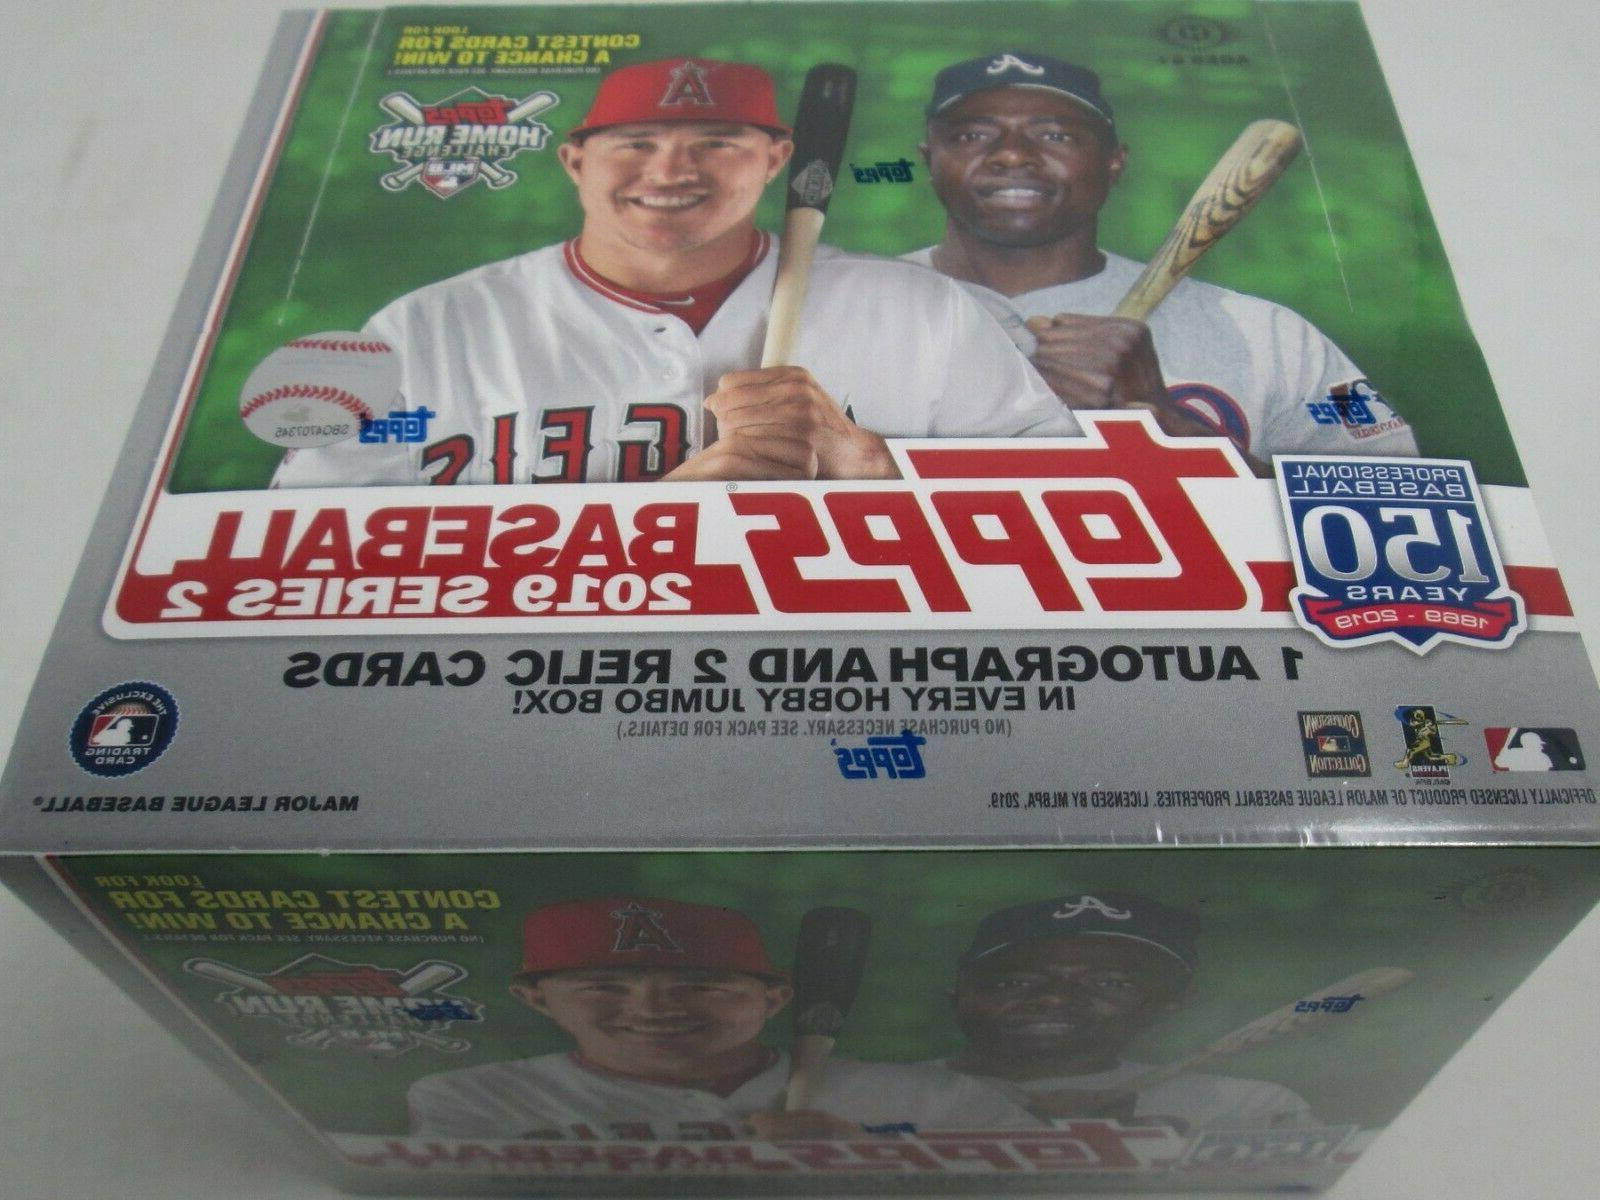 2019 topps series 2 jumbo box break